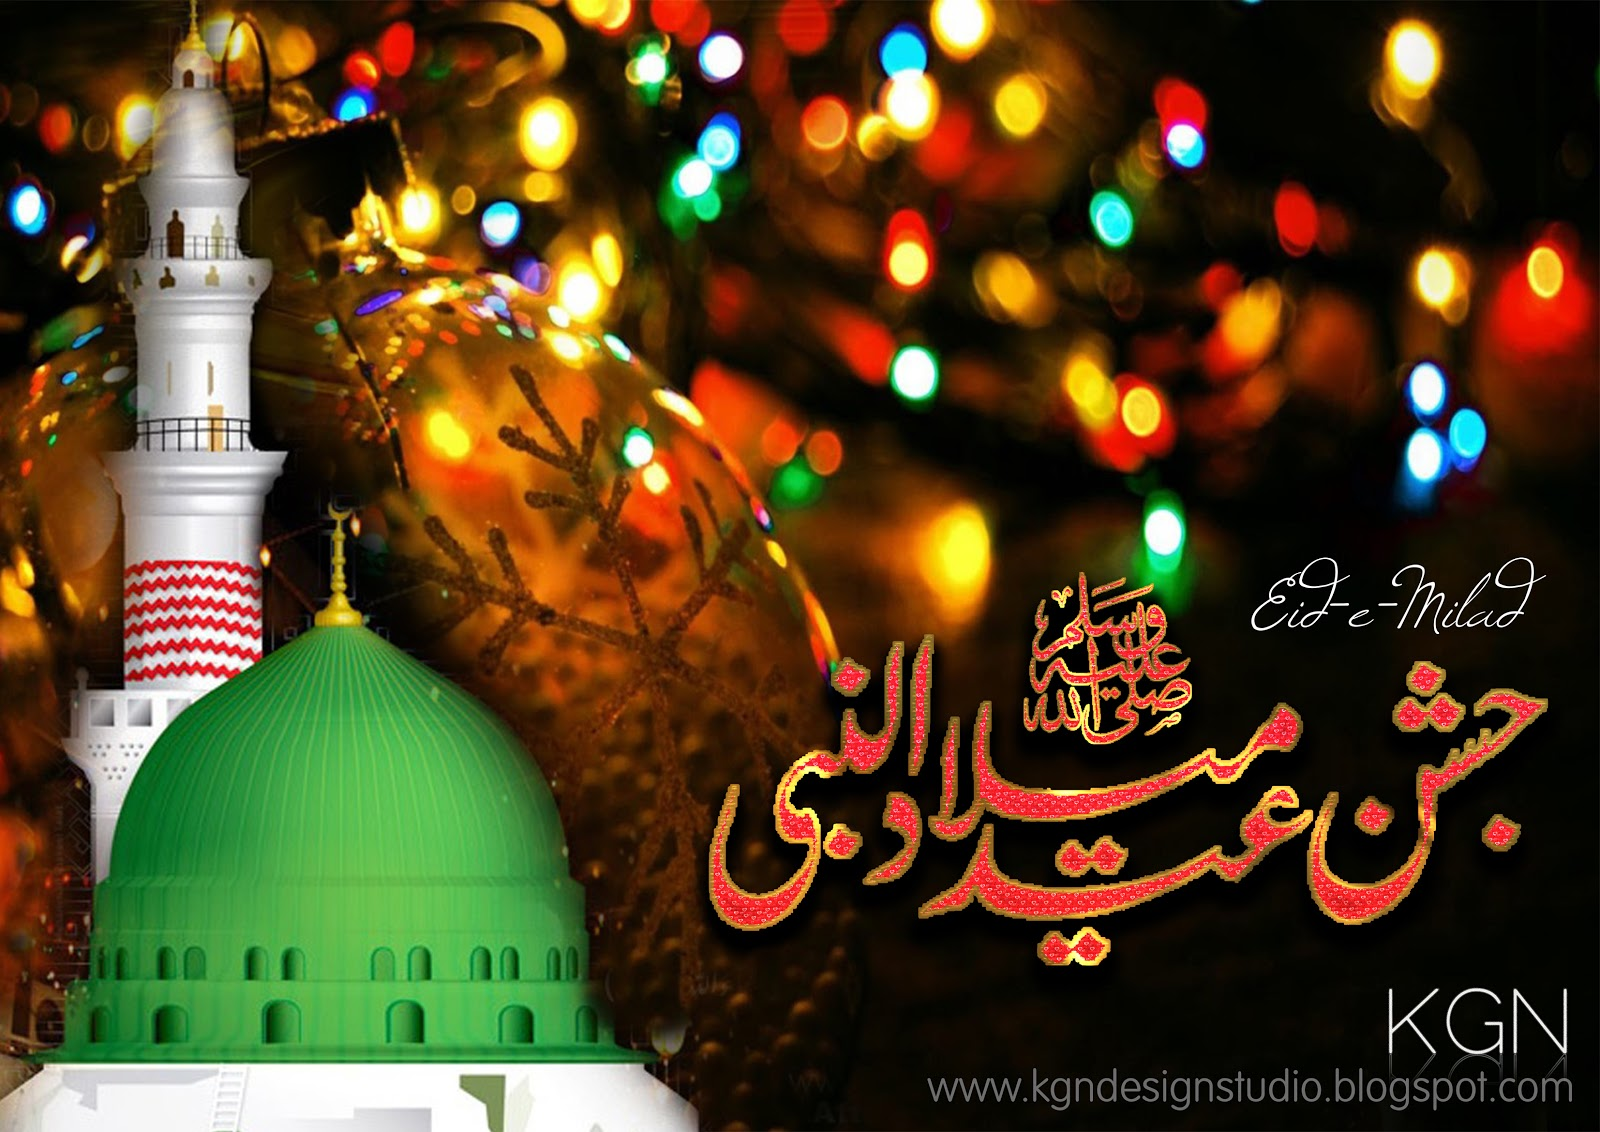 Wallpaper download eid milad un nabi - Http 1 Bp Blogspot Com H3jdtan_8xu Uob3mzy8jli Kgn Design Studio Eid E Milad Un Nabi 2013